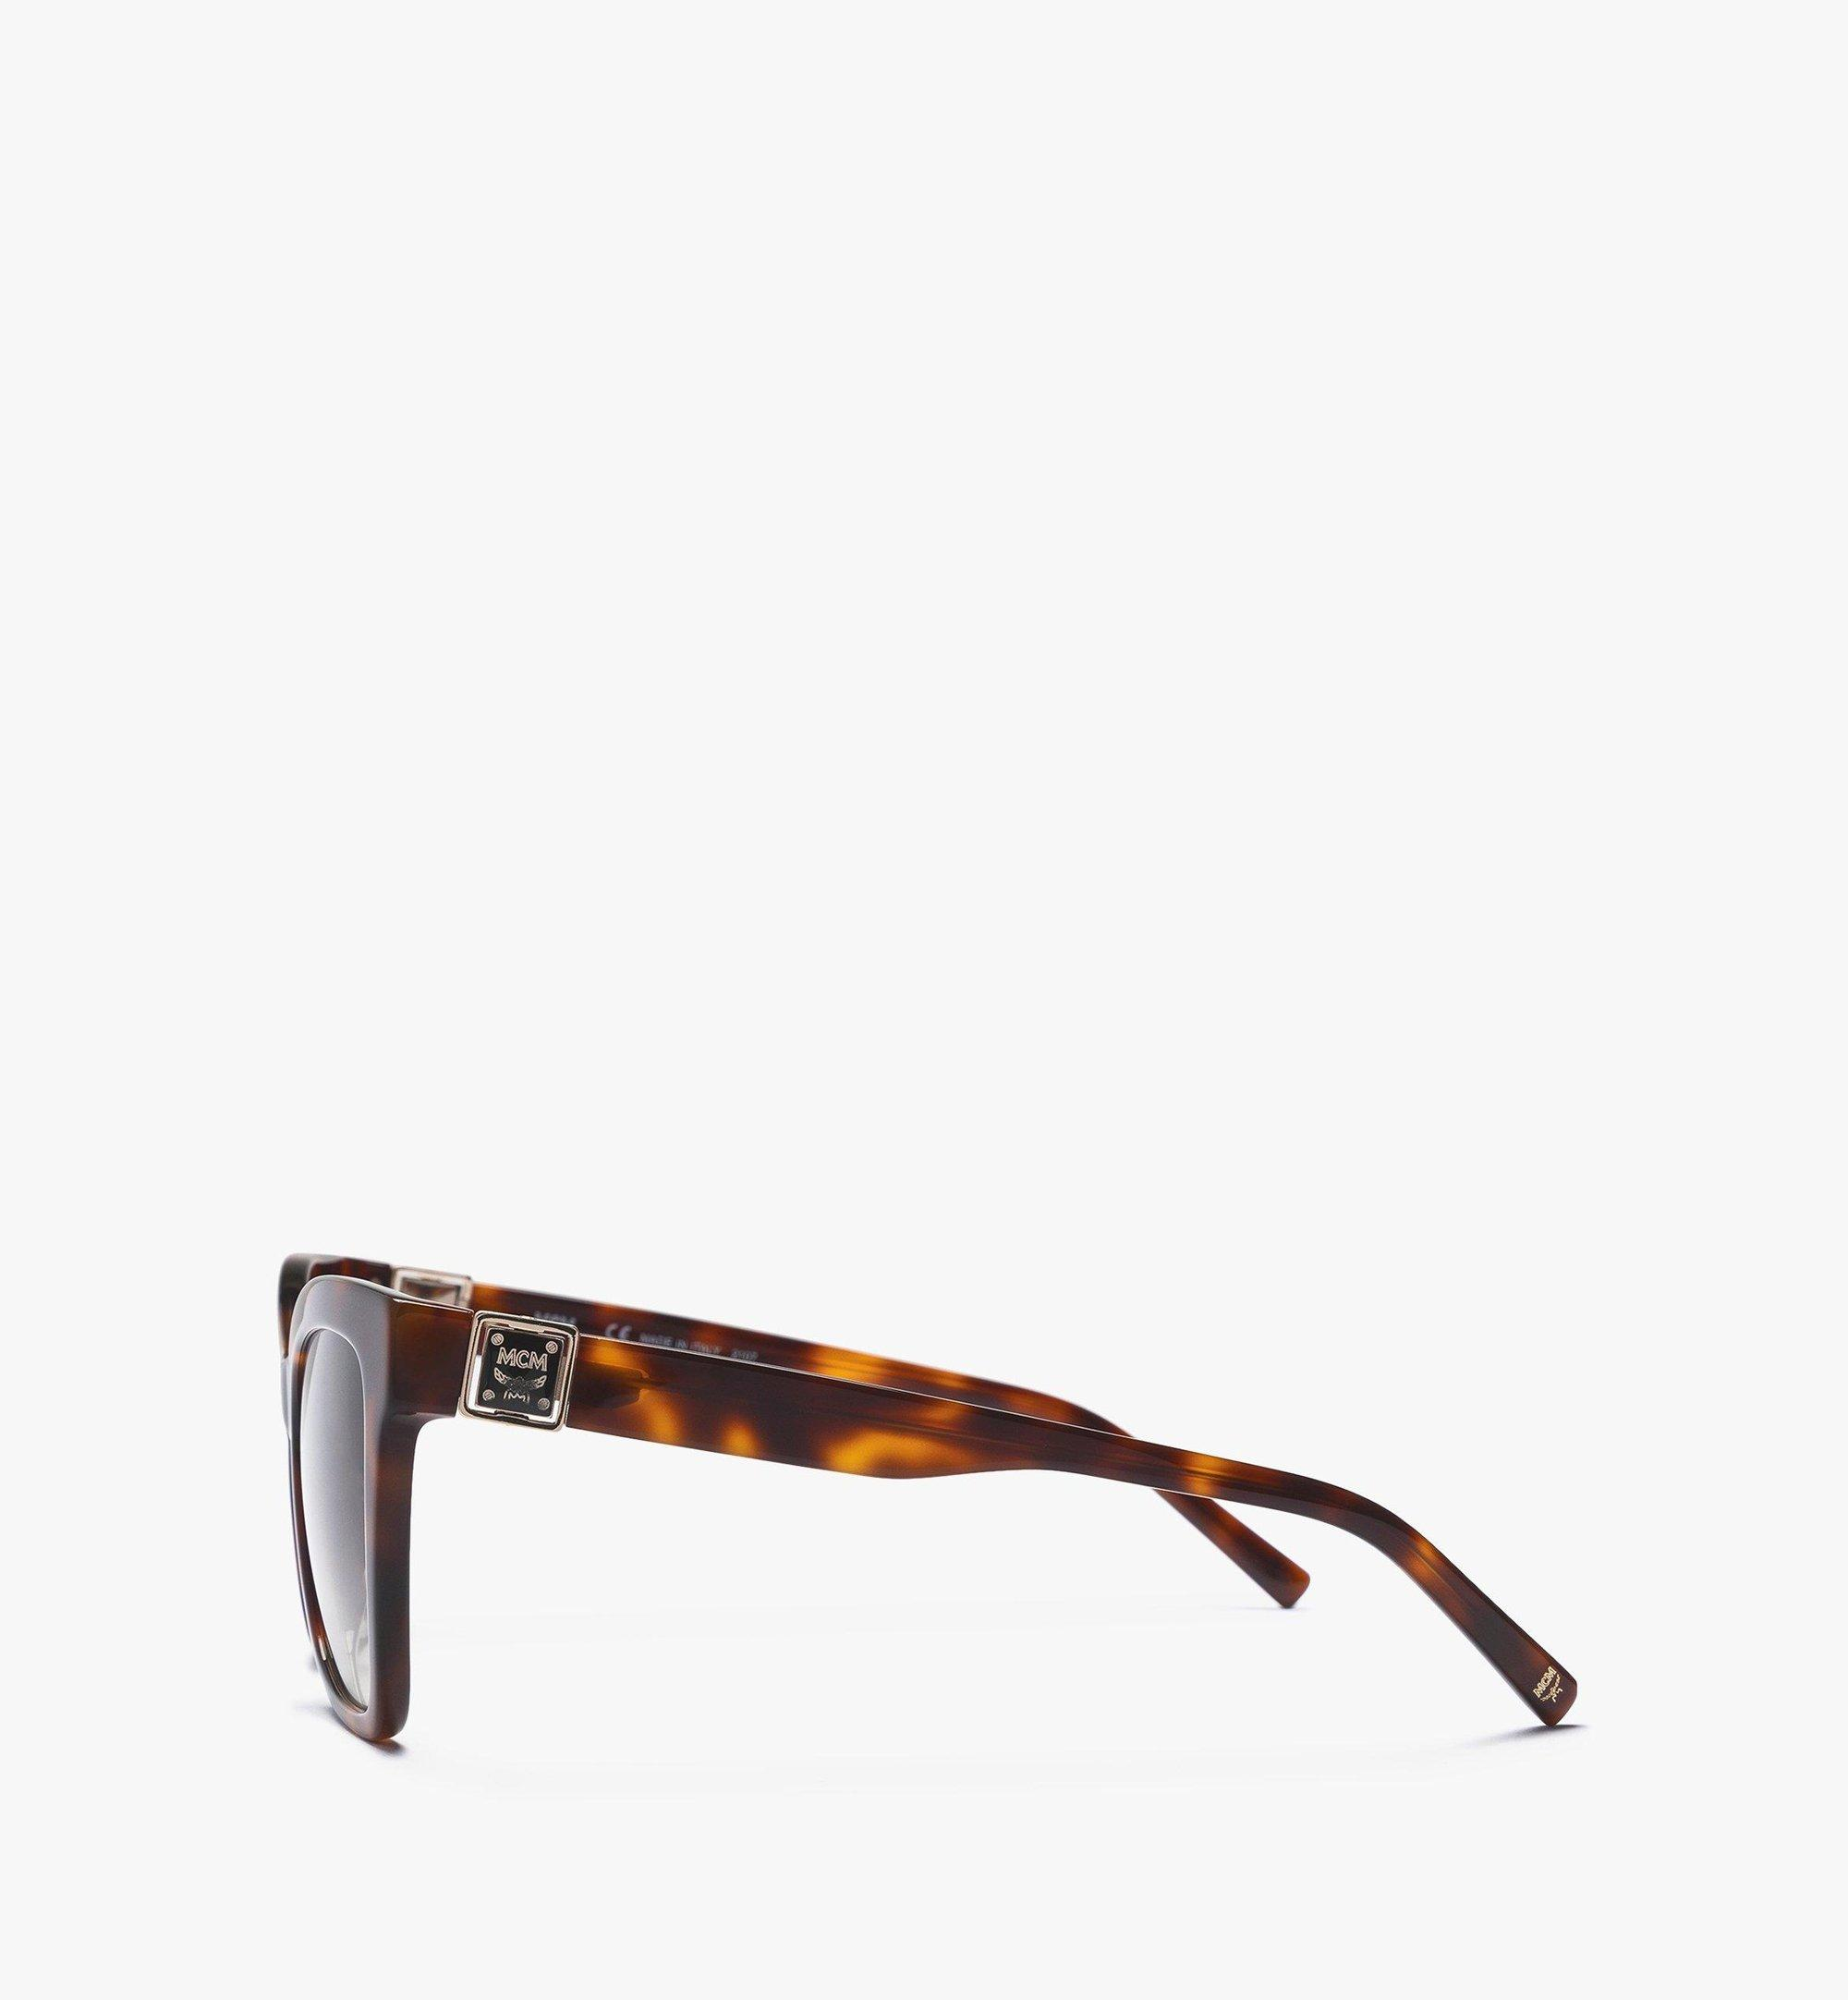 MCM MCM712S Butterfly Sunglasses Brown MEGBAMM08N3001 Alternate View 1